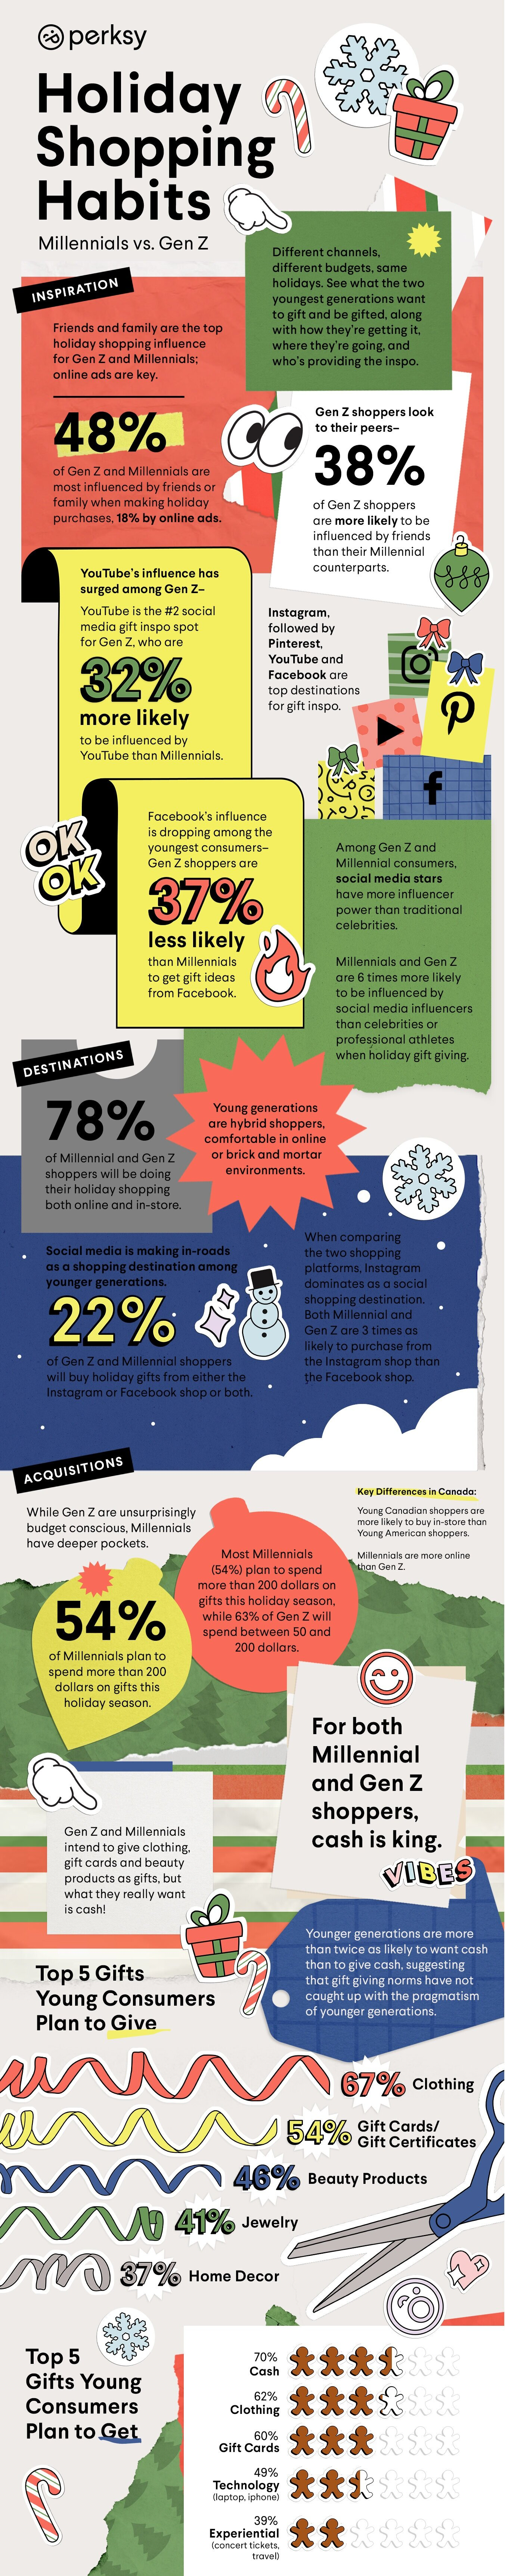 Infographic looks at shopping behaviors among Millennial and Gen Z consumers